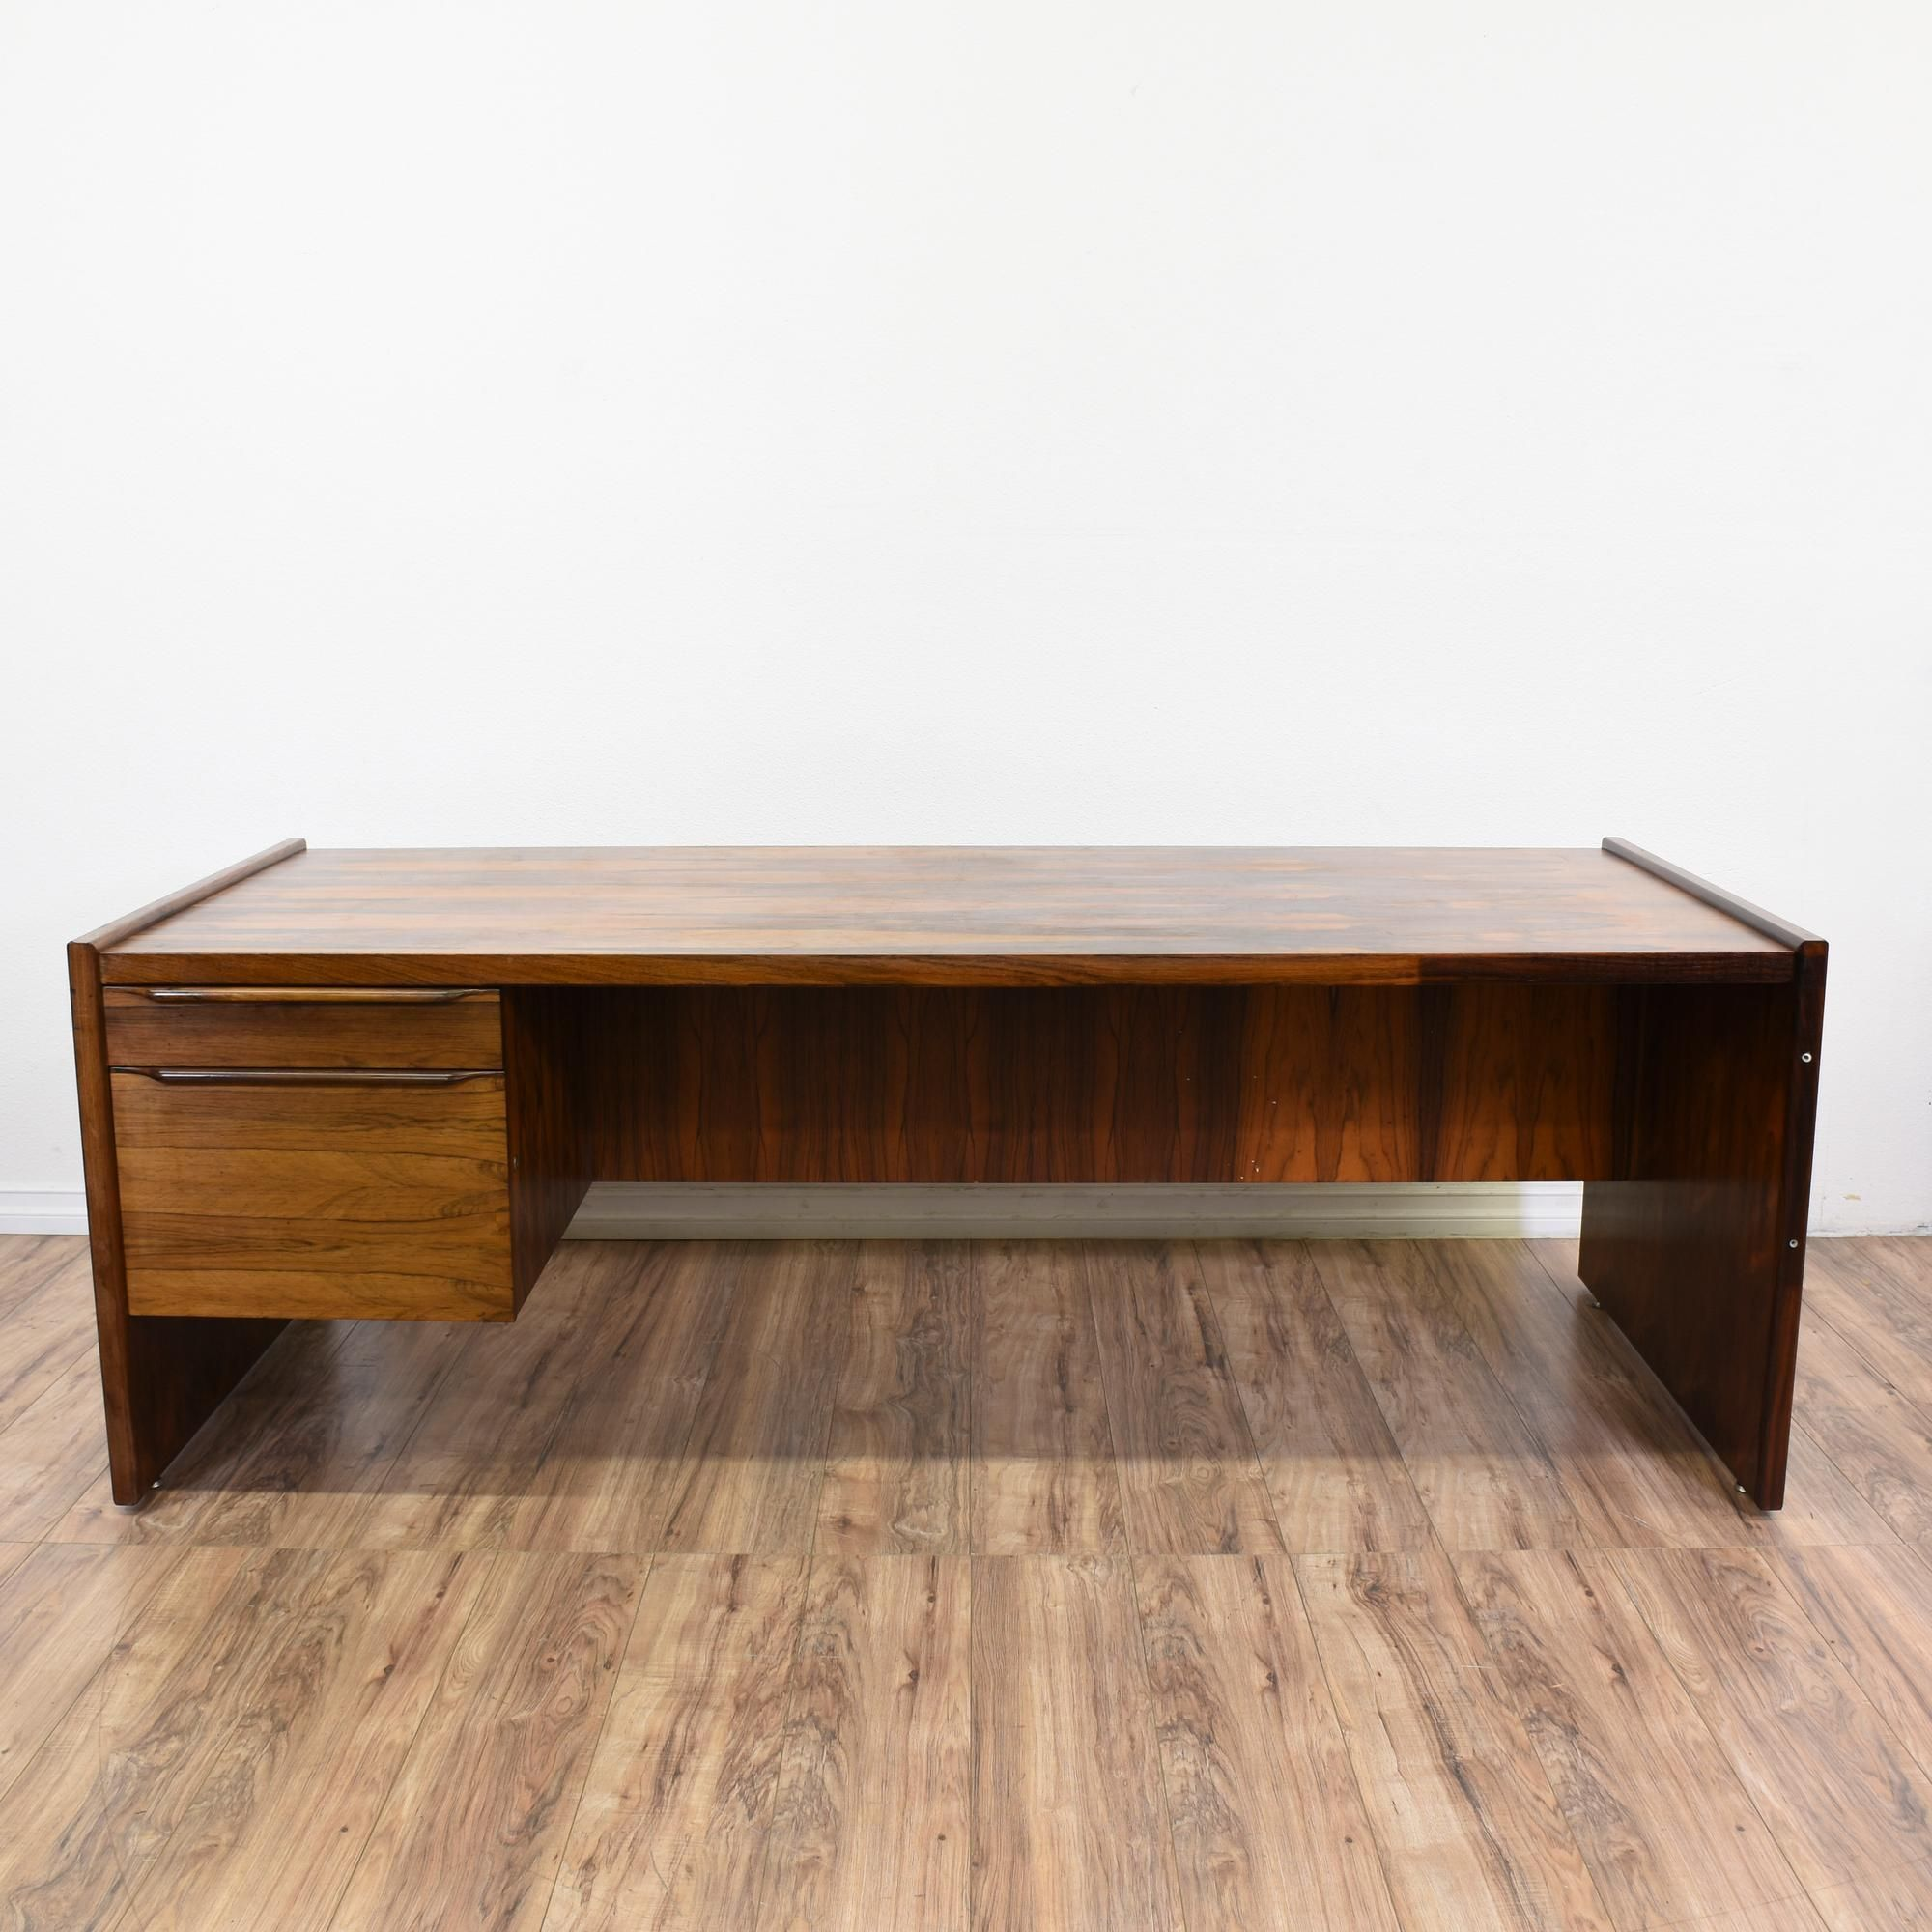 This Mid Century Modern Writing Desk Is Featured In A Solid Wood